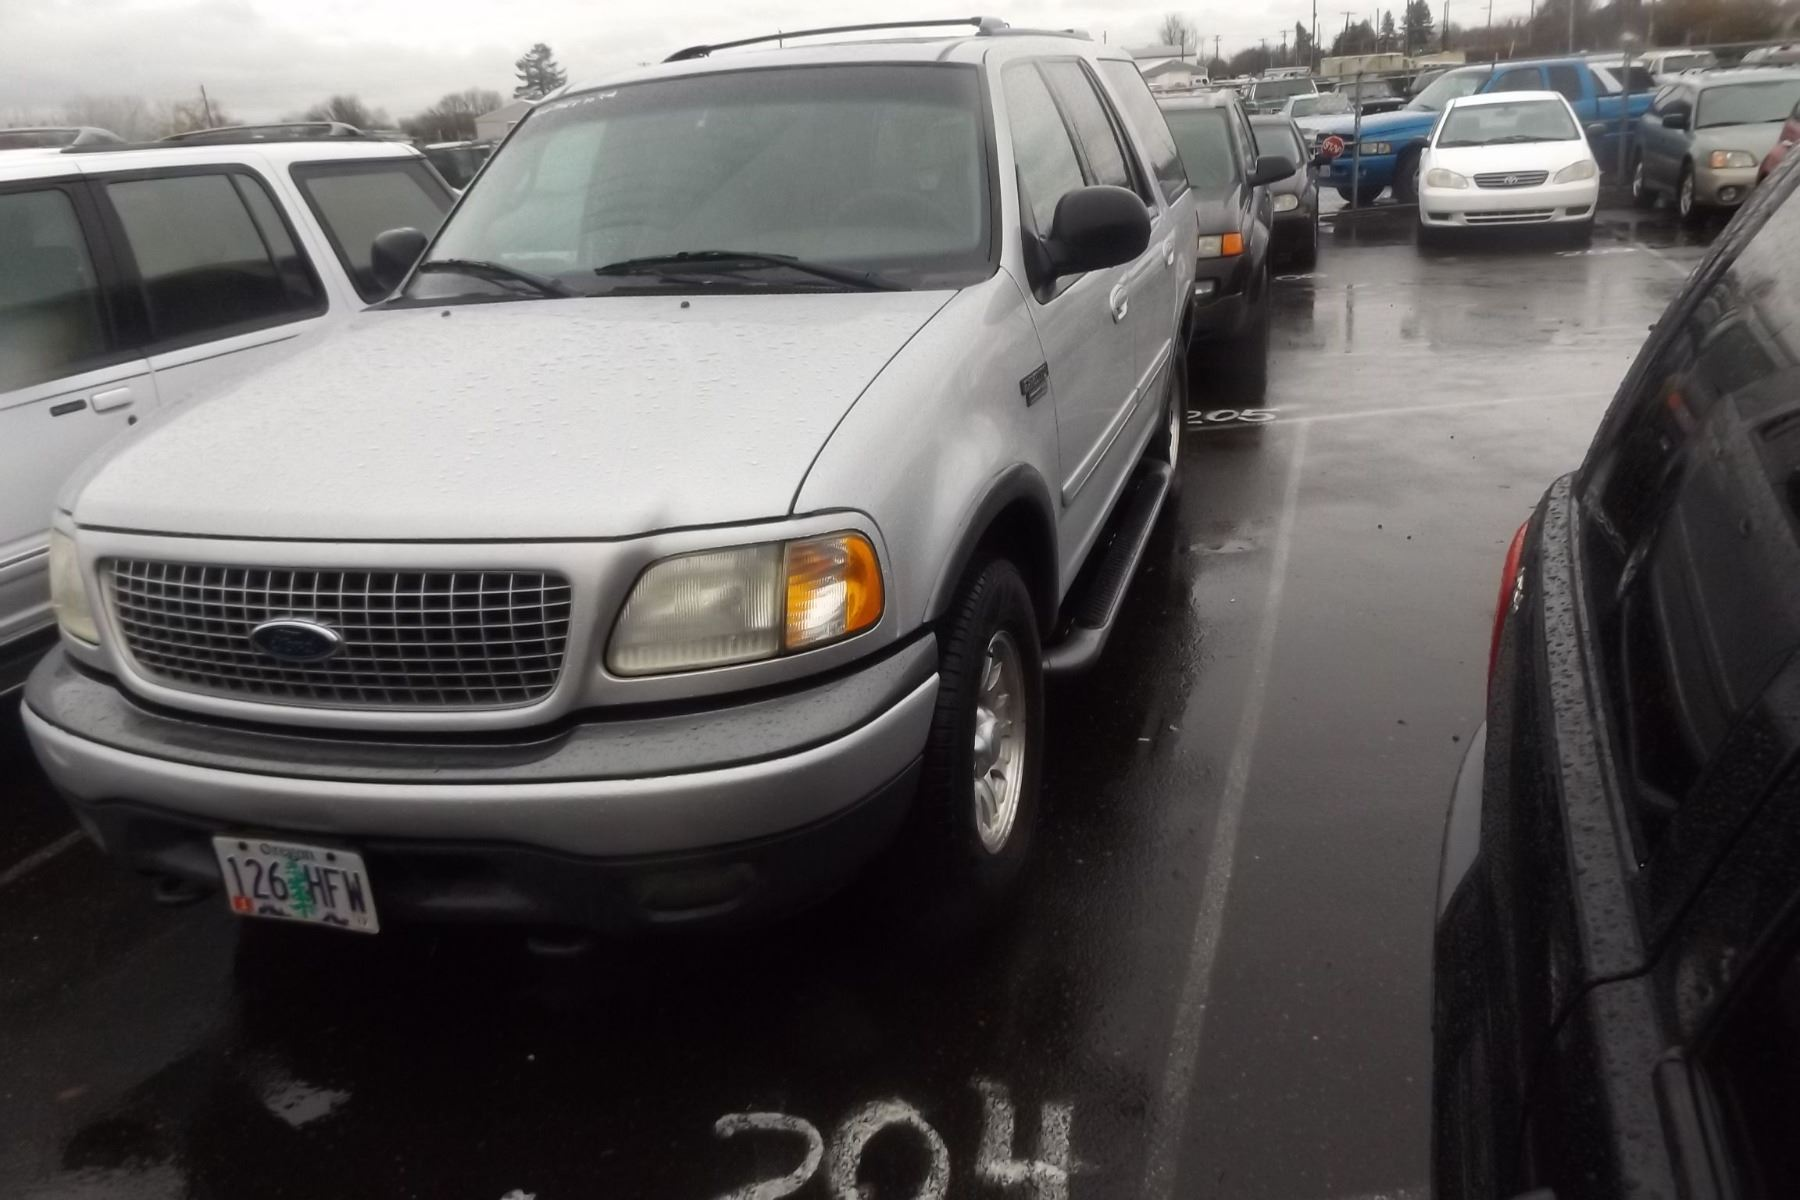 Image 1 2001 ford expedition